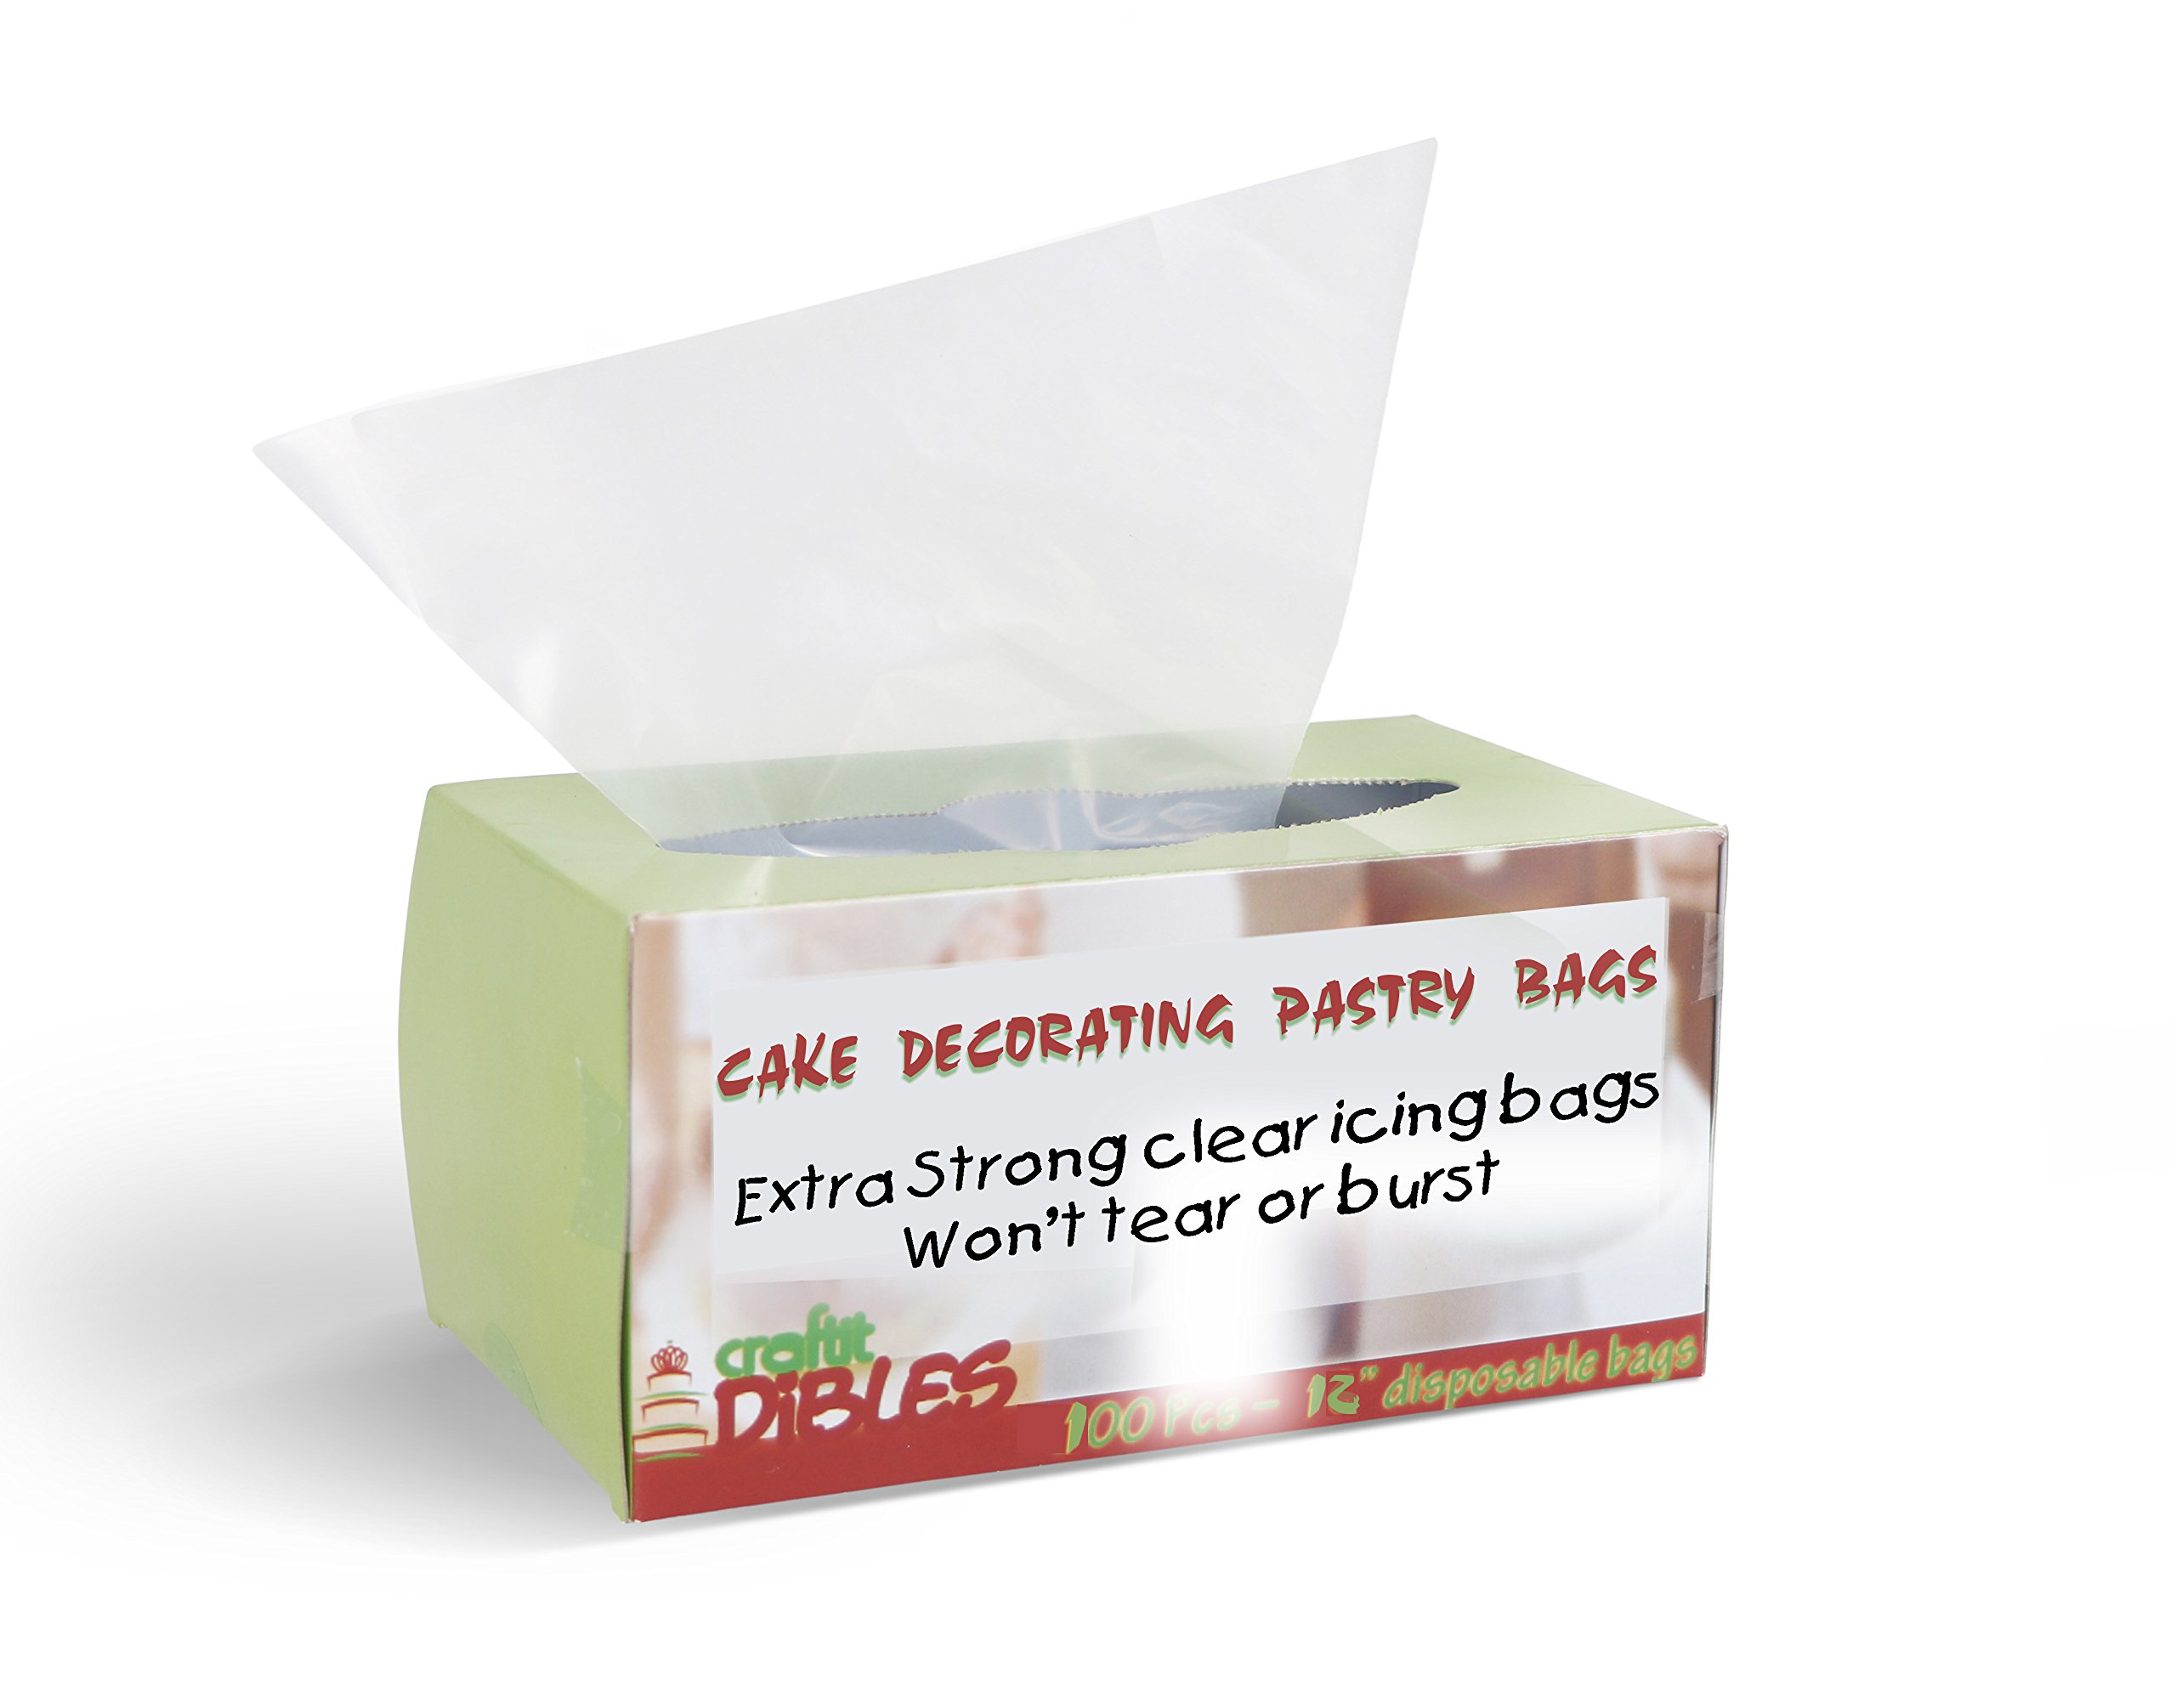 100 Pcs - Cake Decorating, Pastry Bags, in Dispenser Box - 12 Inch, Extra Thick Disposable Icing Bags. Microwave safe. By CiE